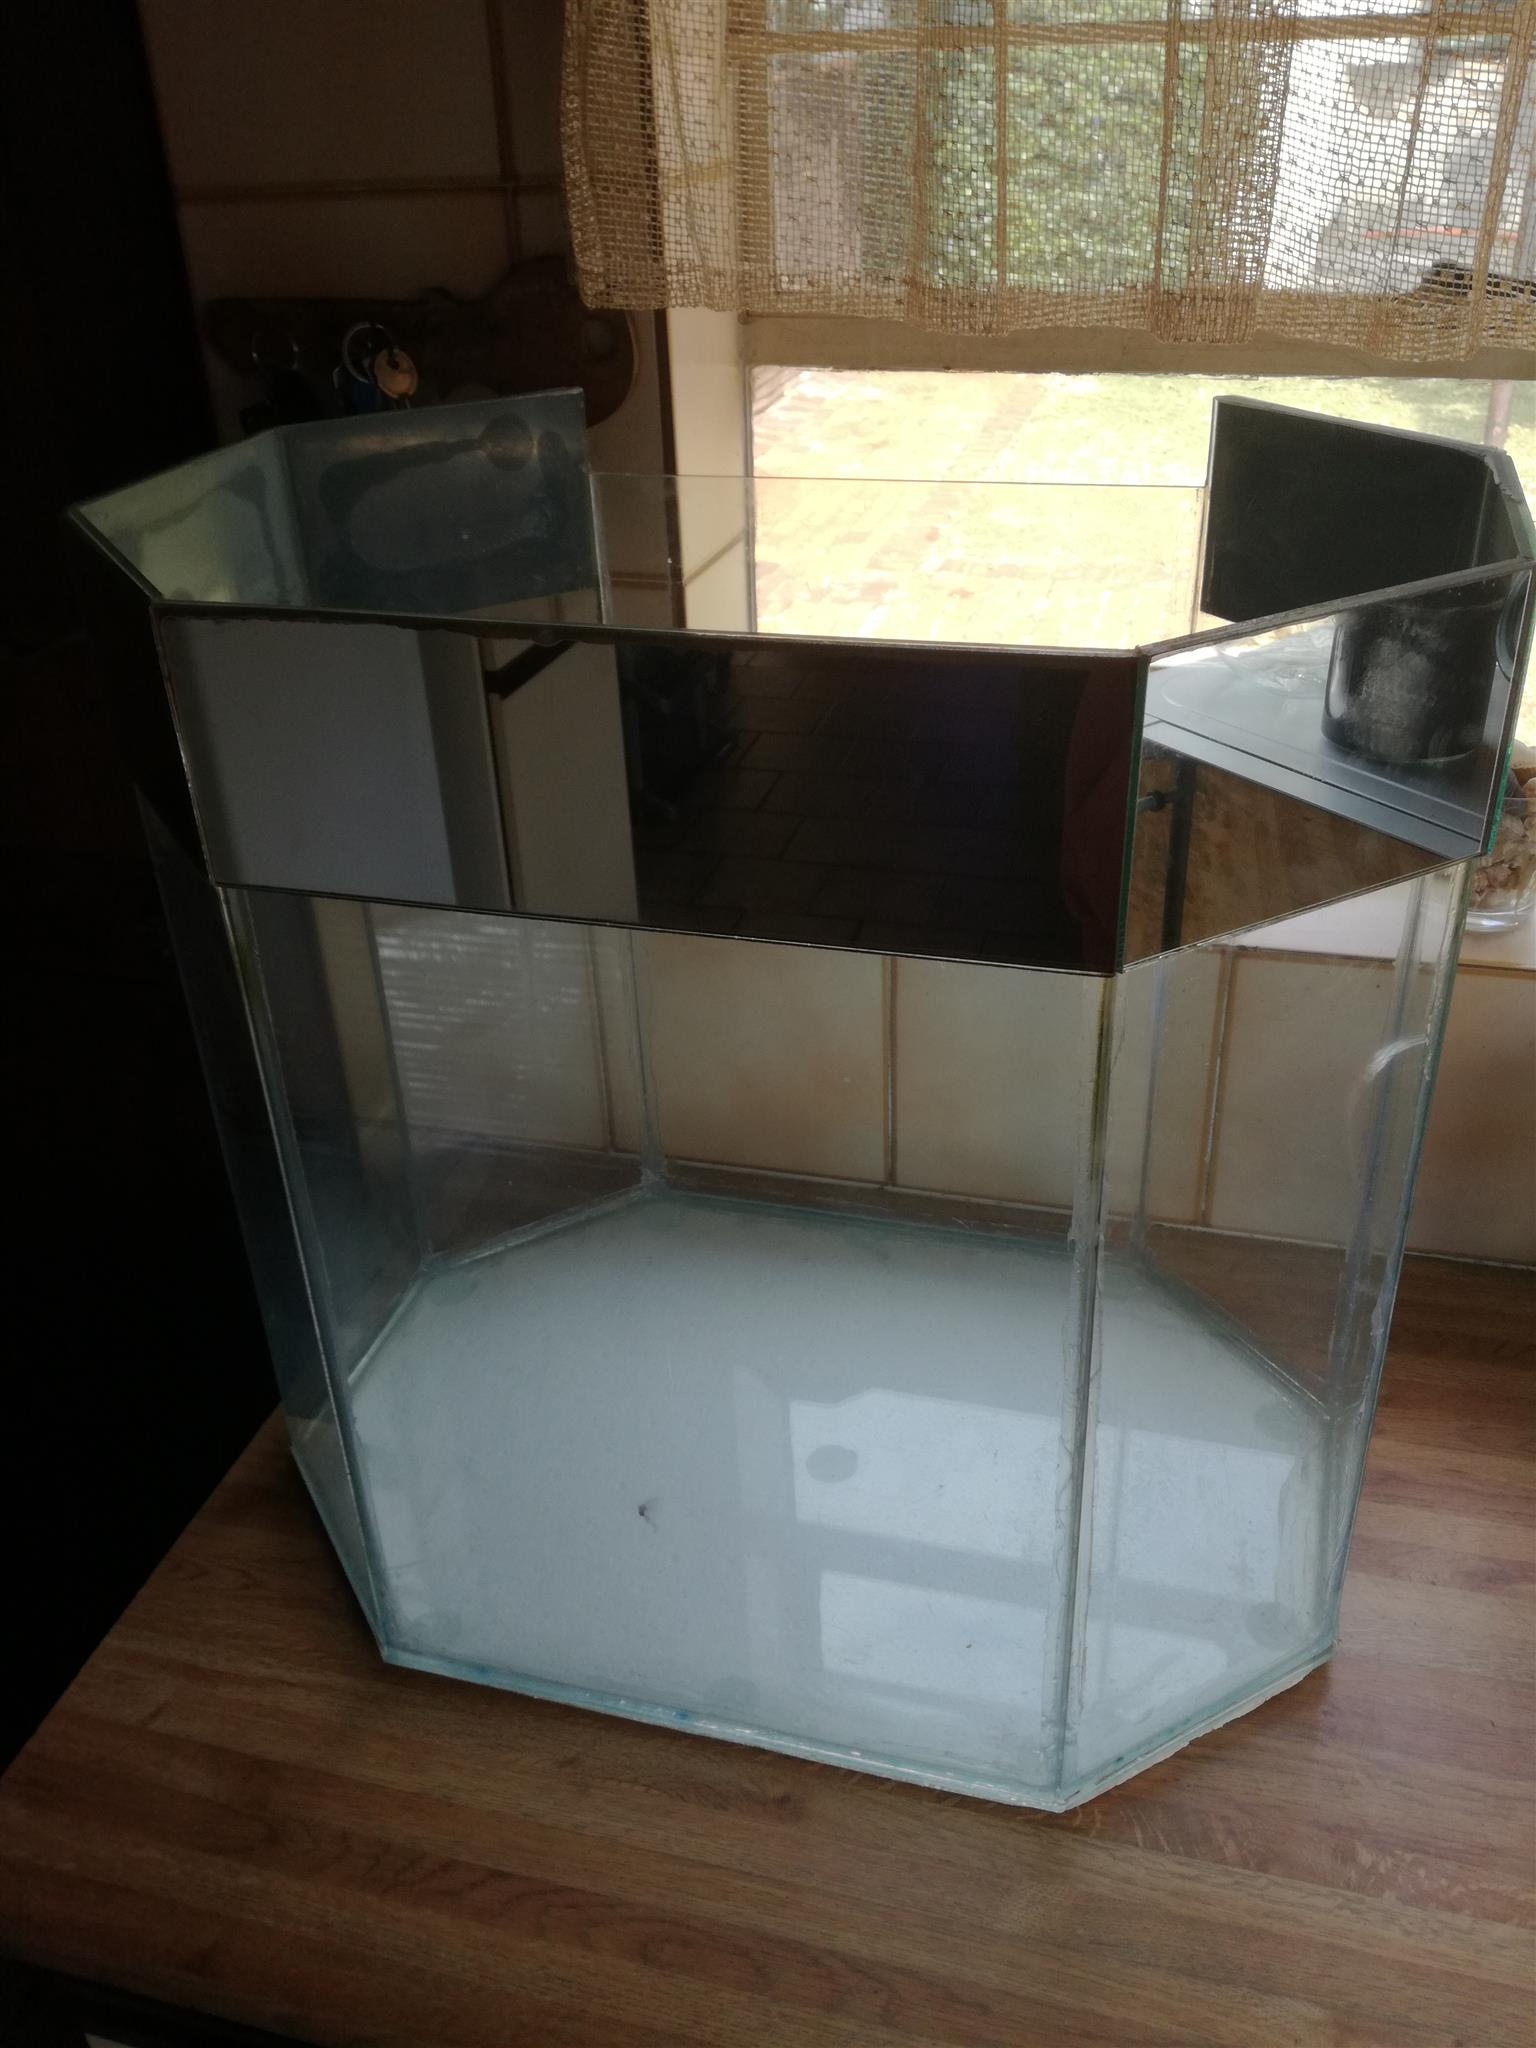 Fish tank for sale for R1 000 or nearest cash offer